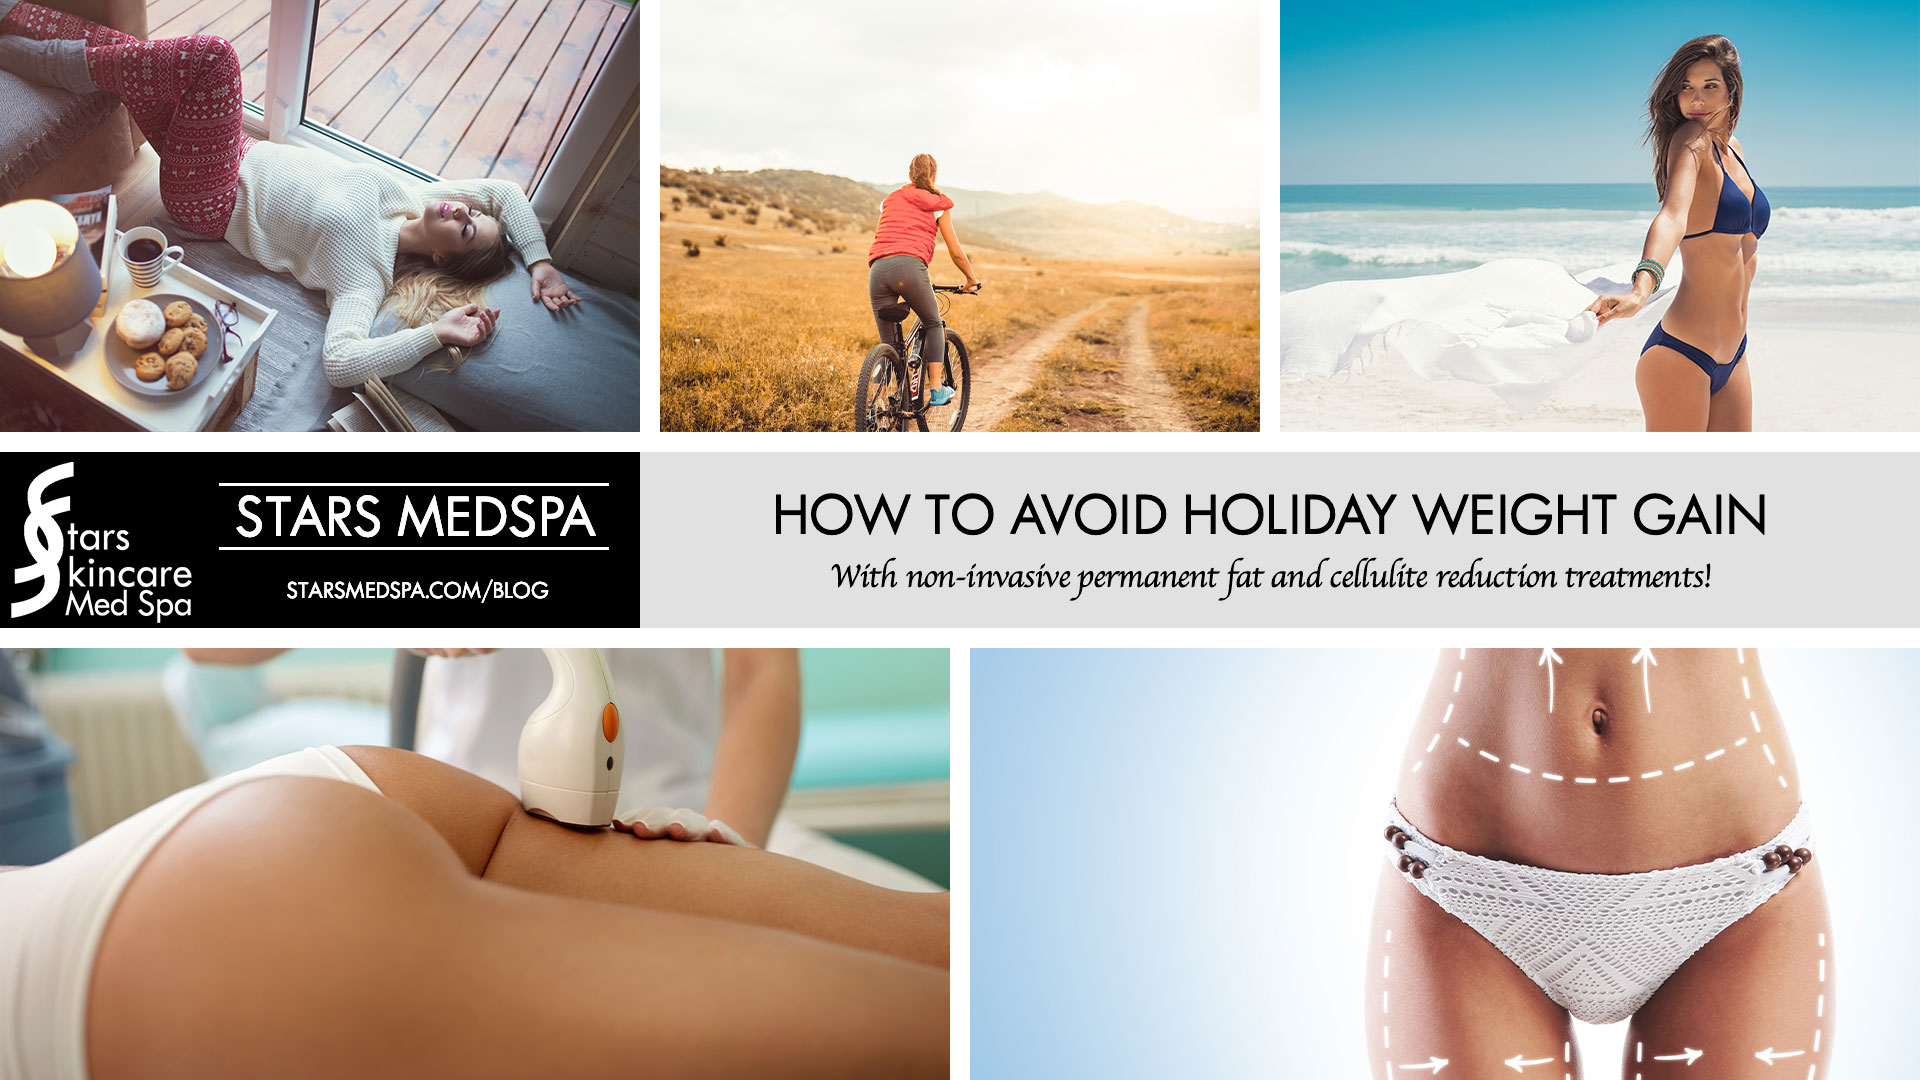 How To Avoid Holiday Weight Gain And Still Indulge Stars